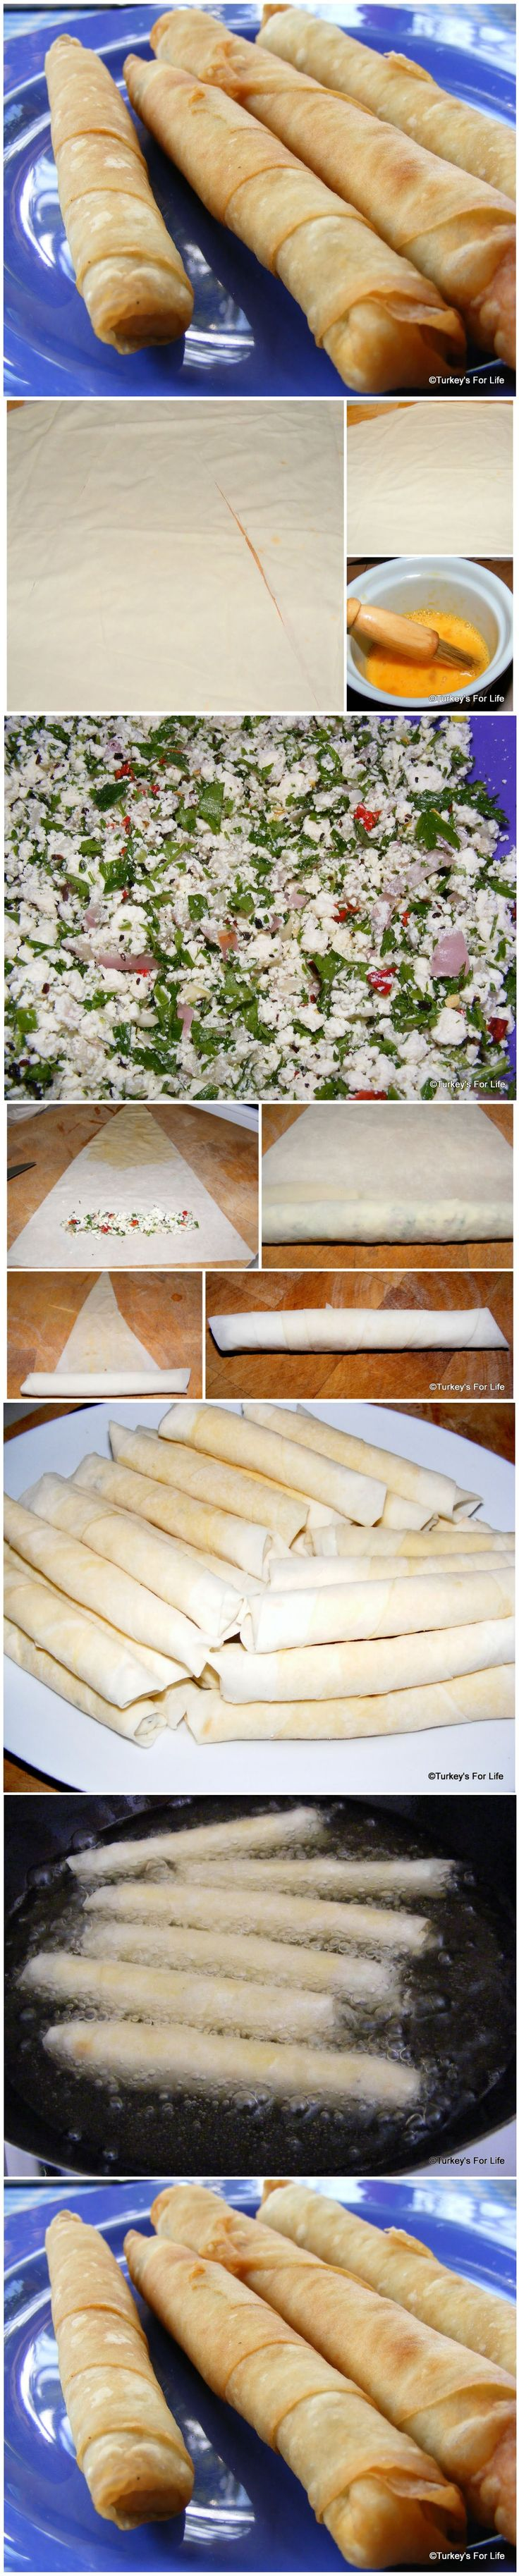 A Turkish Recipe For Sigara Böreği (Cheese Rolls)